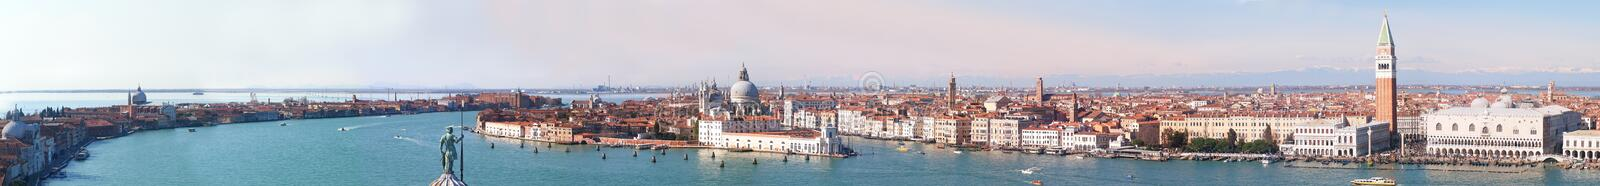 Venice - Panorama royalty free stock images